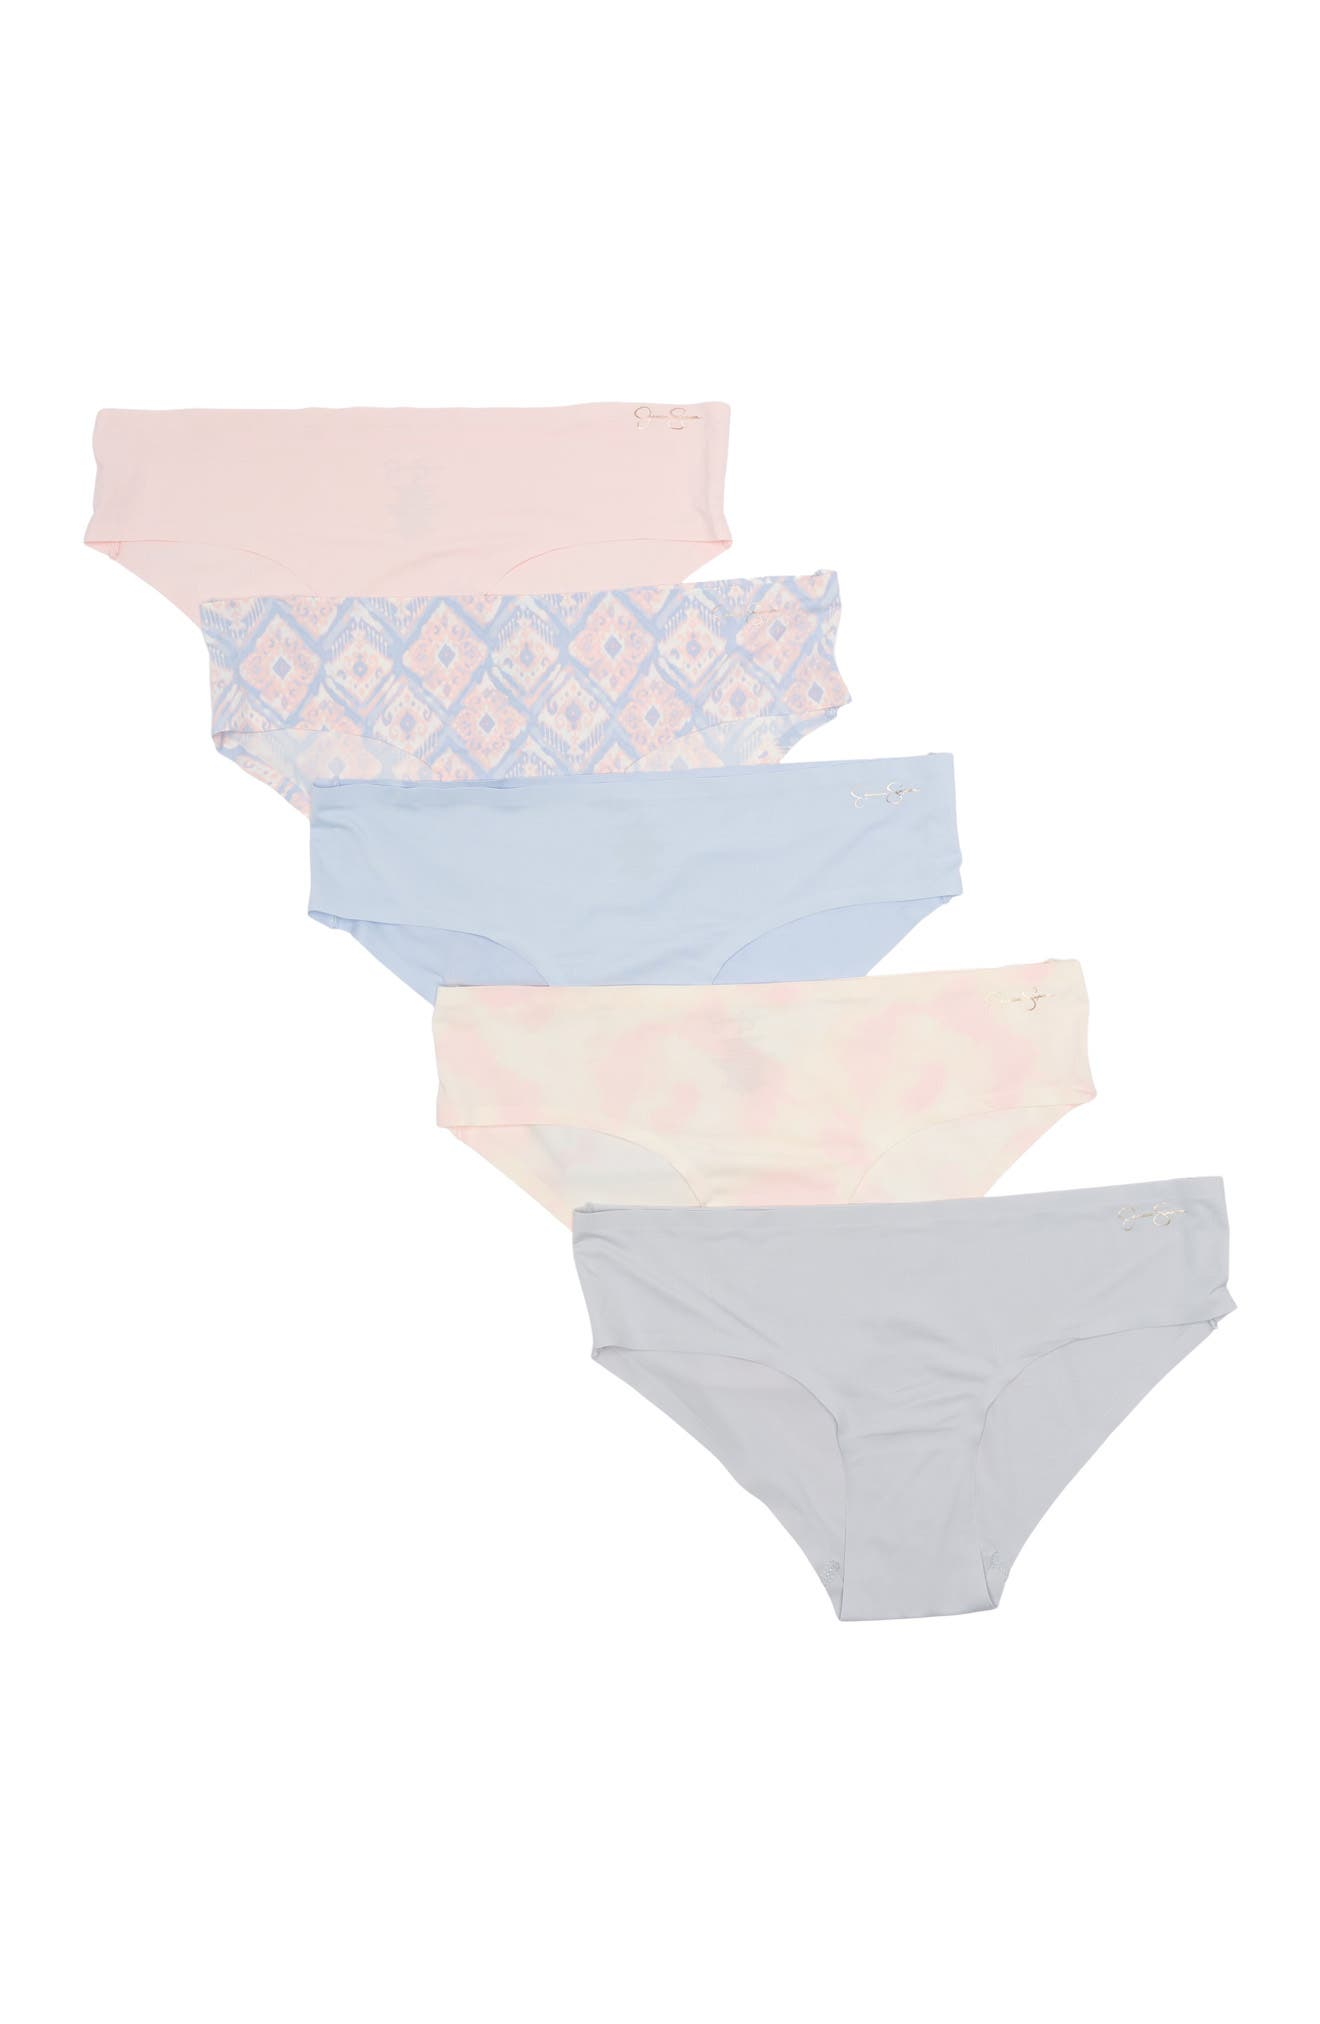 Image of Jessica Simpson Micro Bonded Hipster Panties - Set of 5